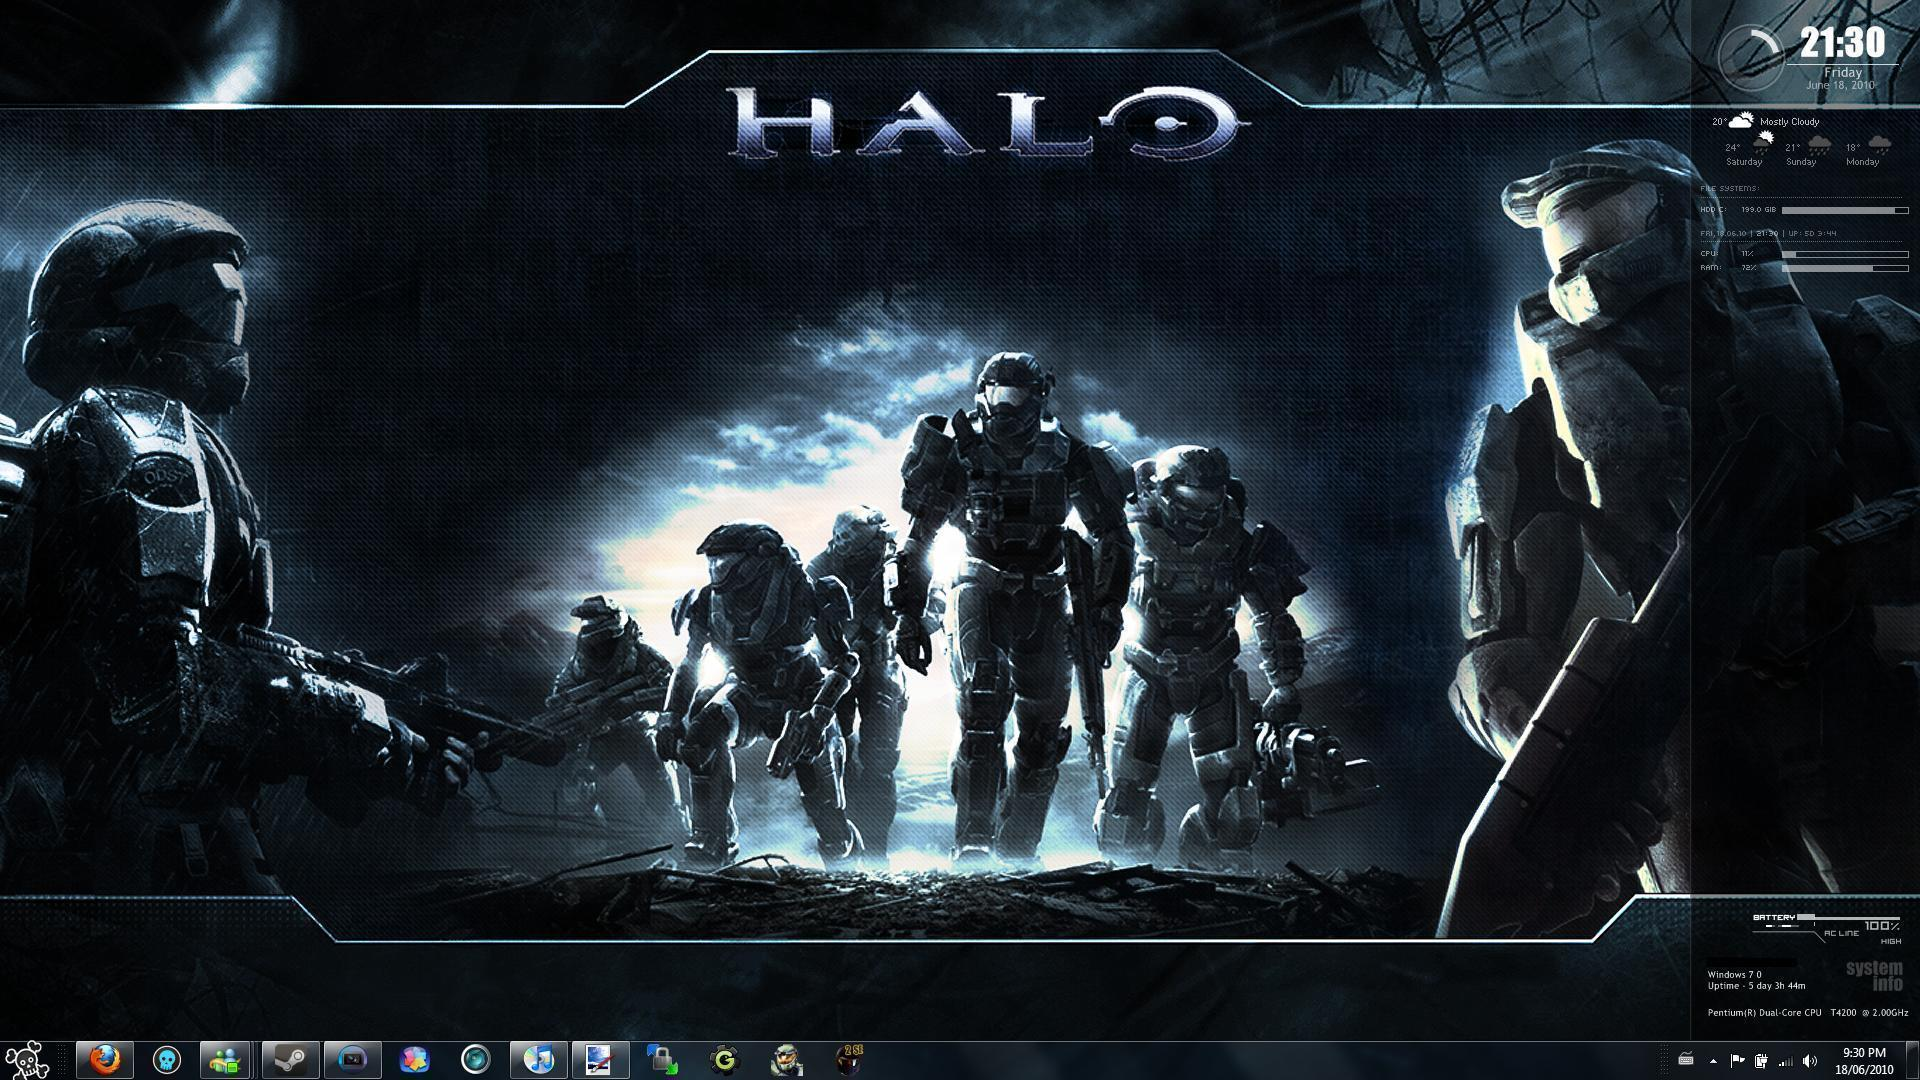 Cool Halo Wallpapers 1920x1080